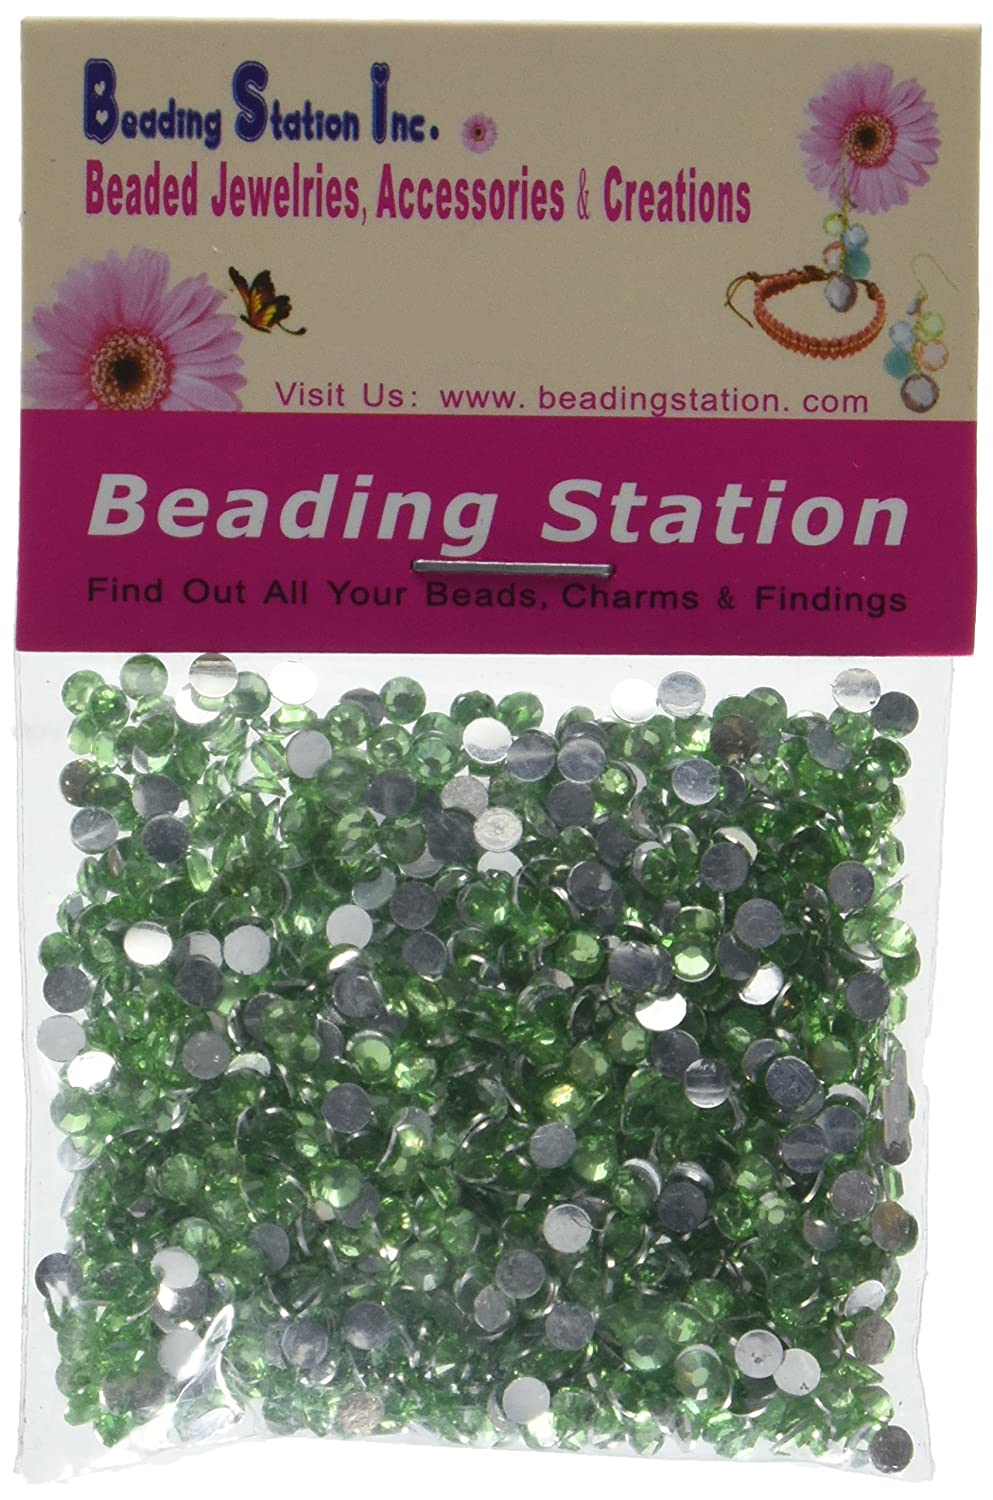 Beading Station 1440-Piece Flat Back Brilliant 14-Cut Round Rhinestones, 3mm-10ss, Light Green by Beading Station   B007W7RKN4